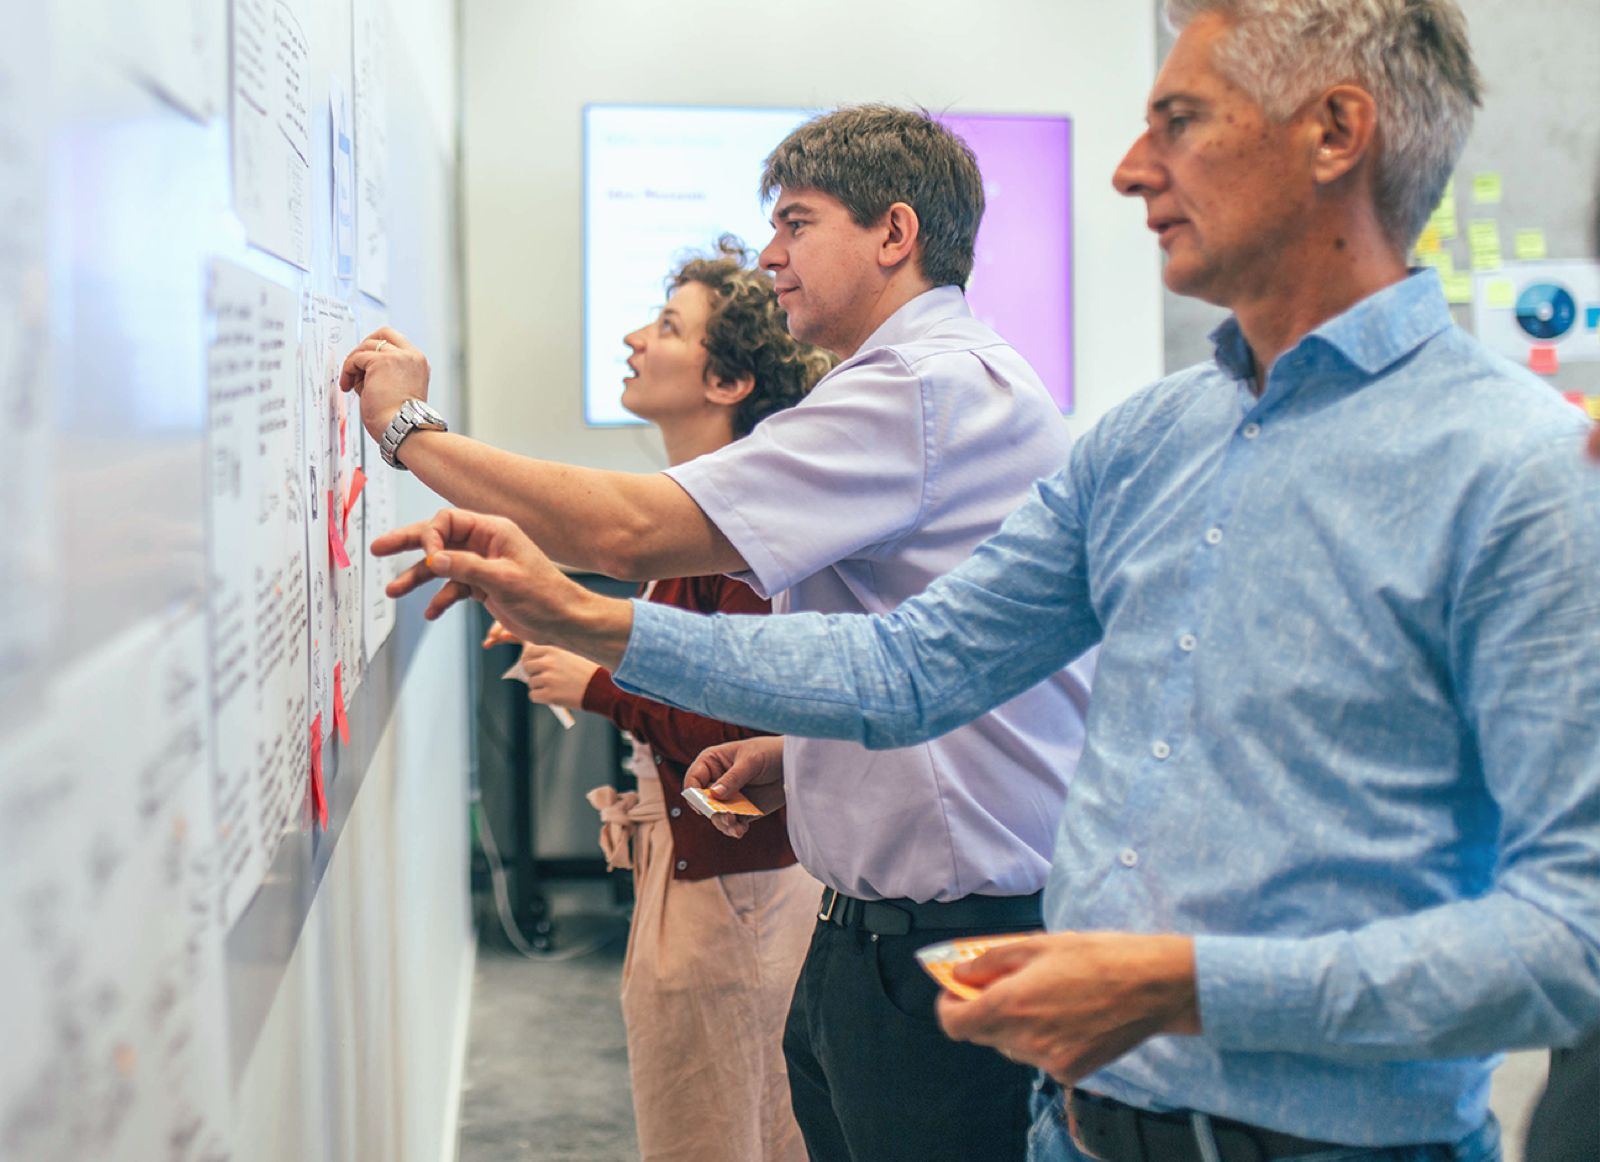 3 people working together in a strategic workshop.